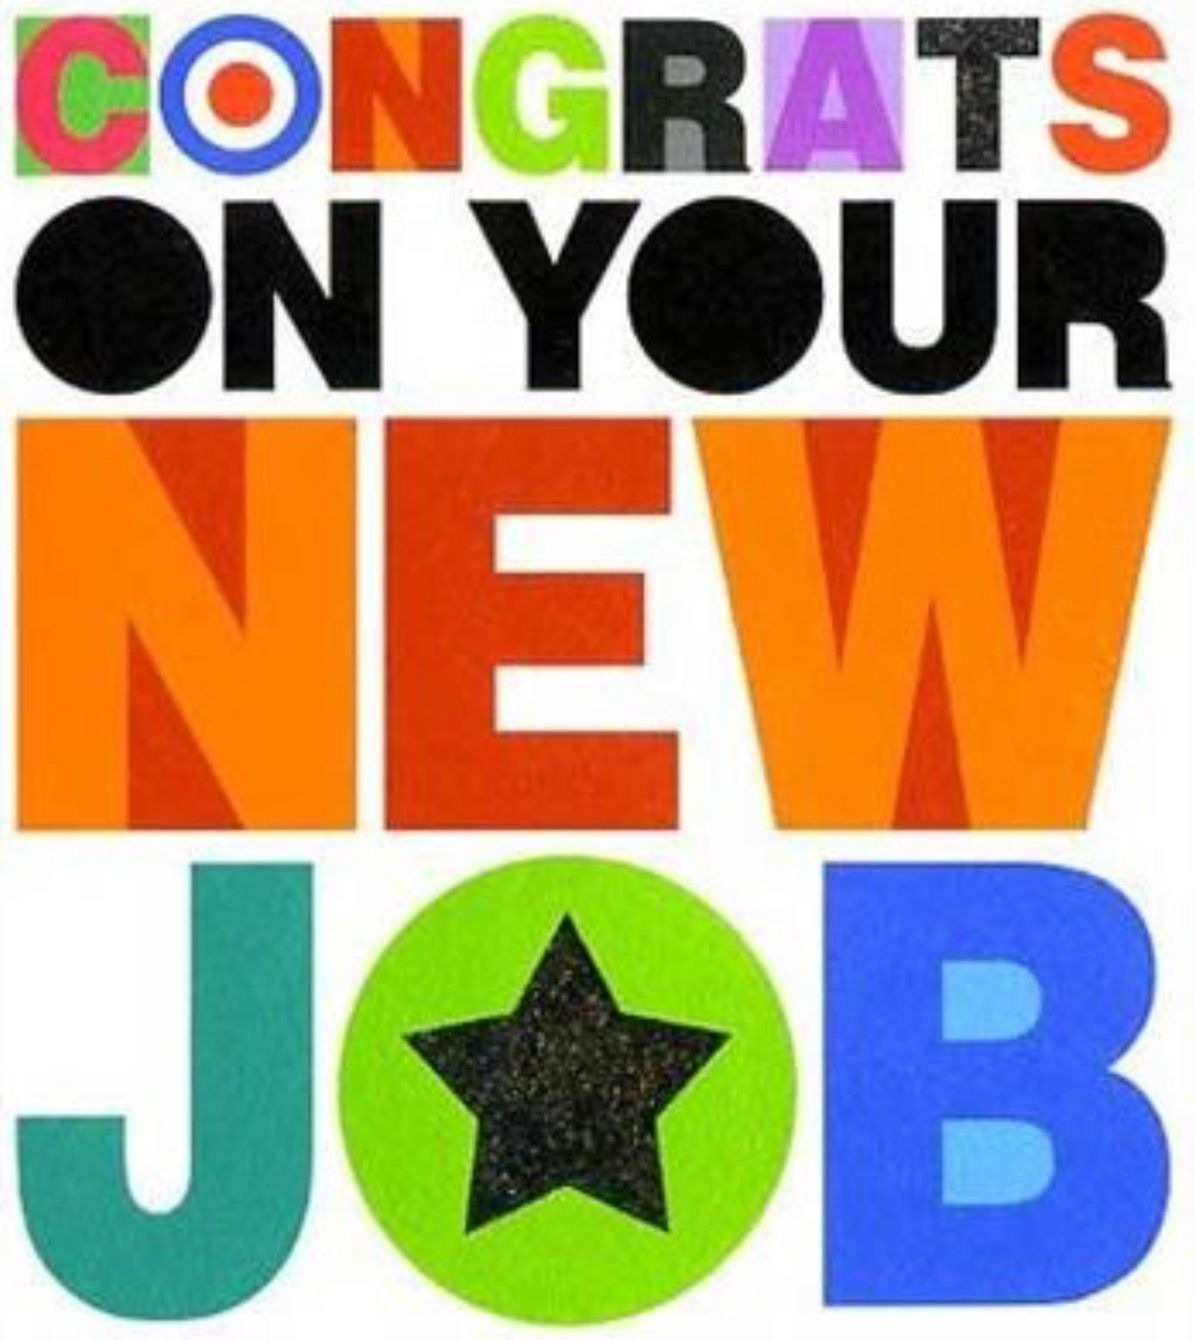 Congratulations Quotes New Job Position: Congrats On Your New Job. Grateful In Advance